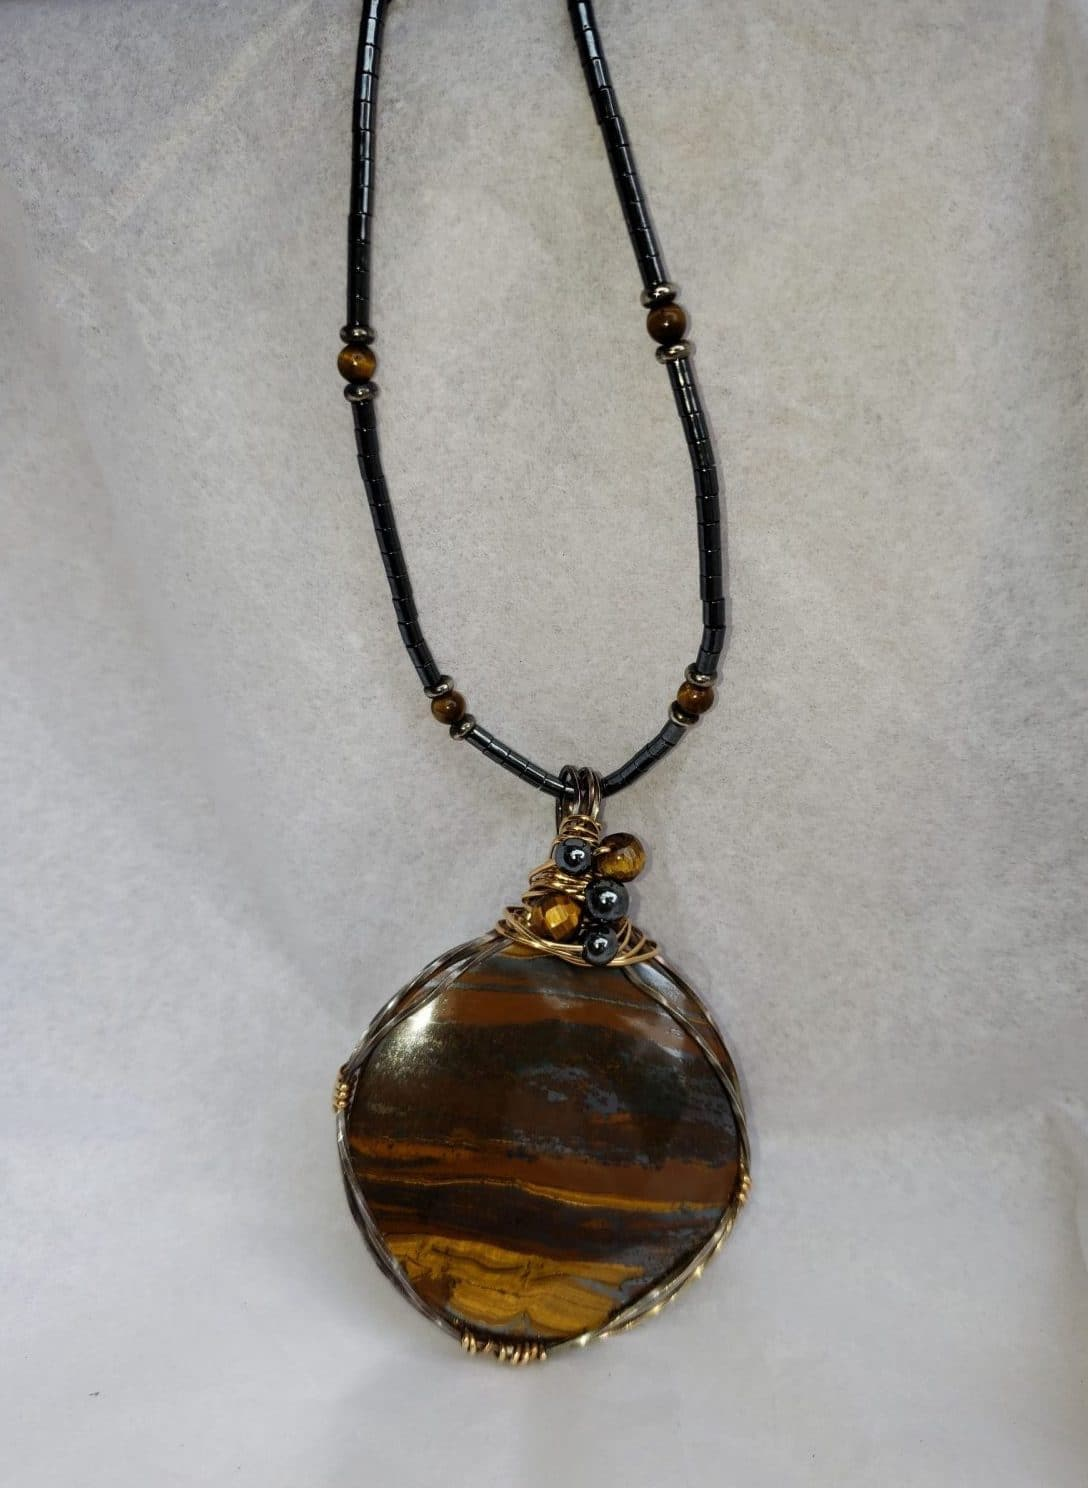 Tiger's Eye and Chain by Tina Acciavatti